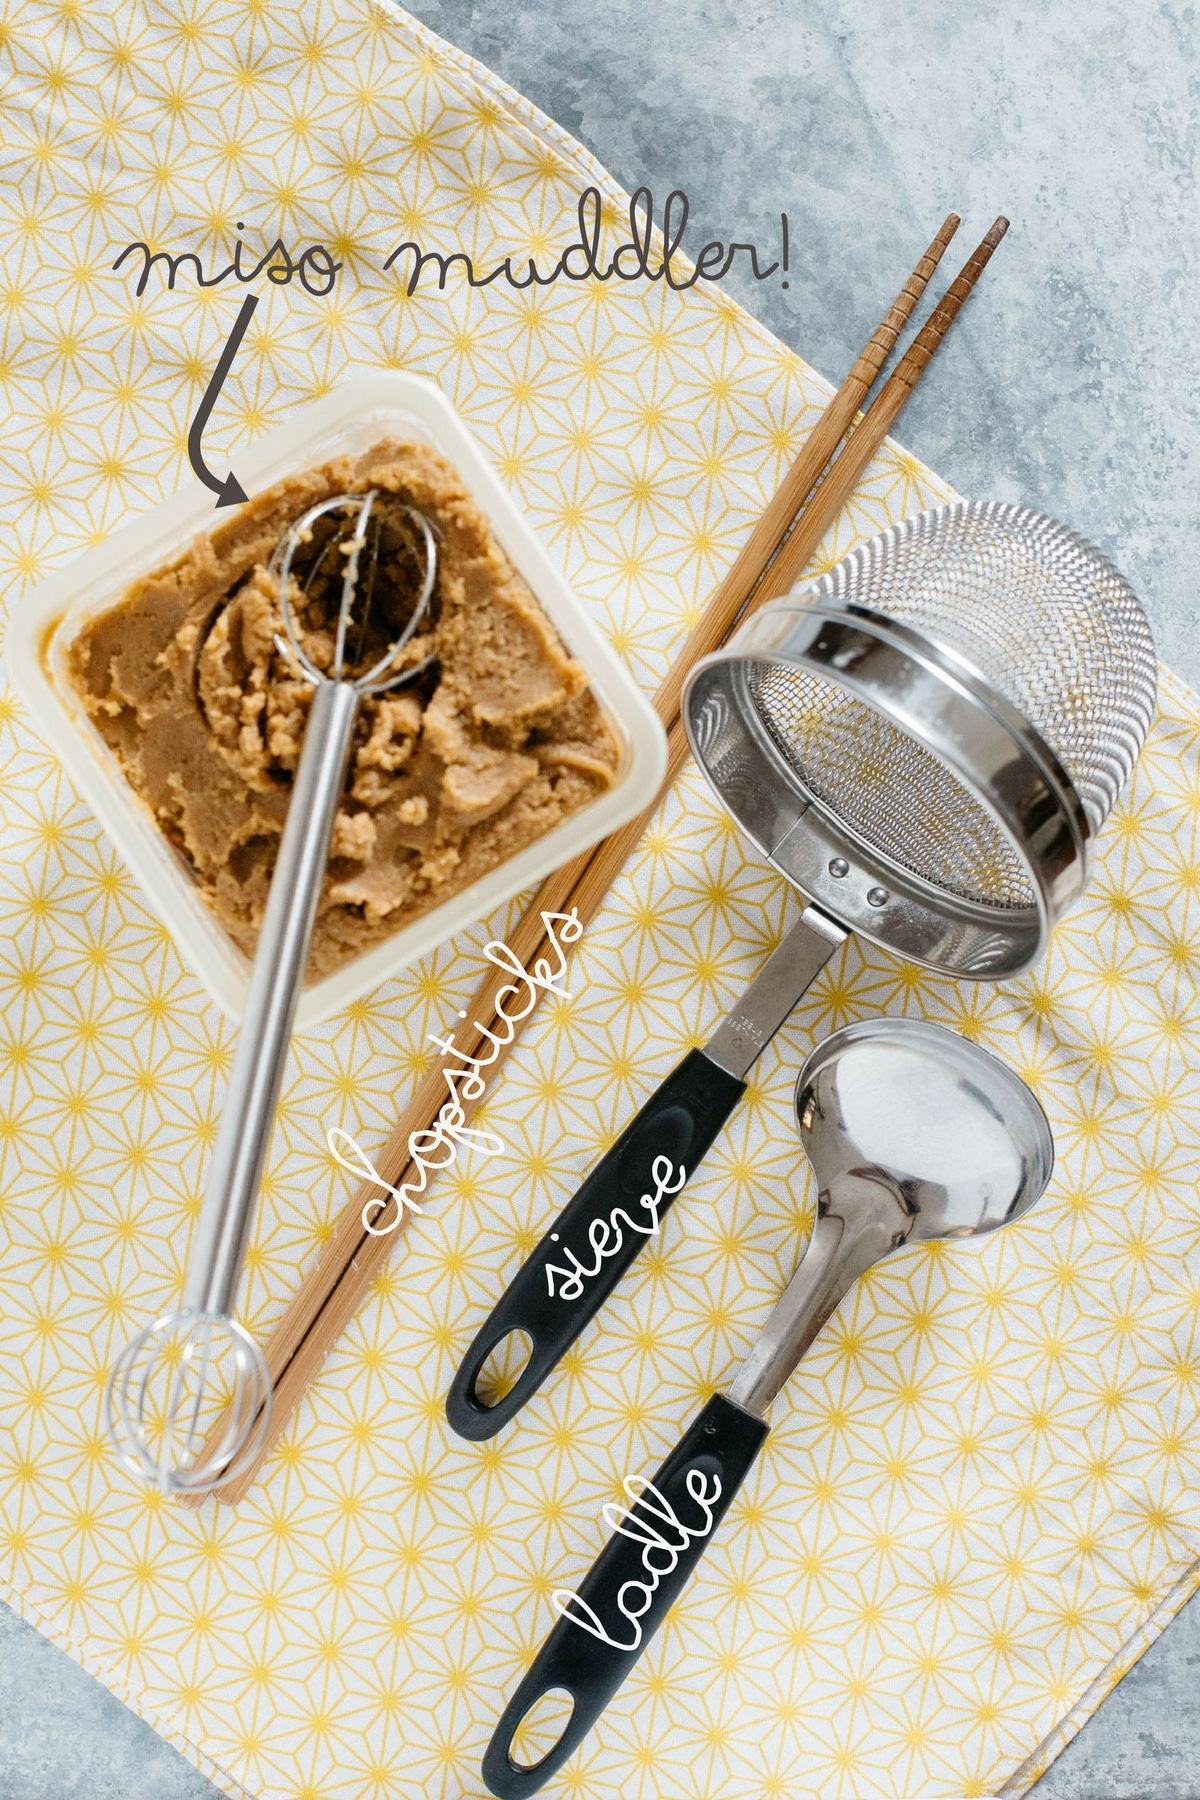 miso soup making equipments, miso muddler, chopsticks, sieve and laddle